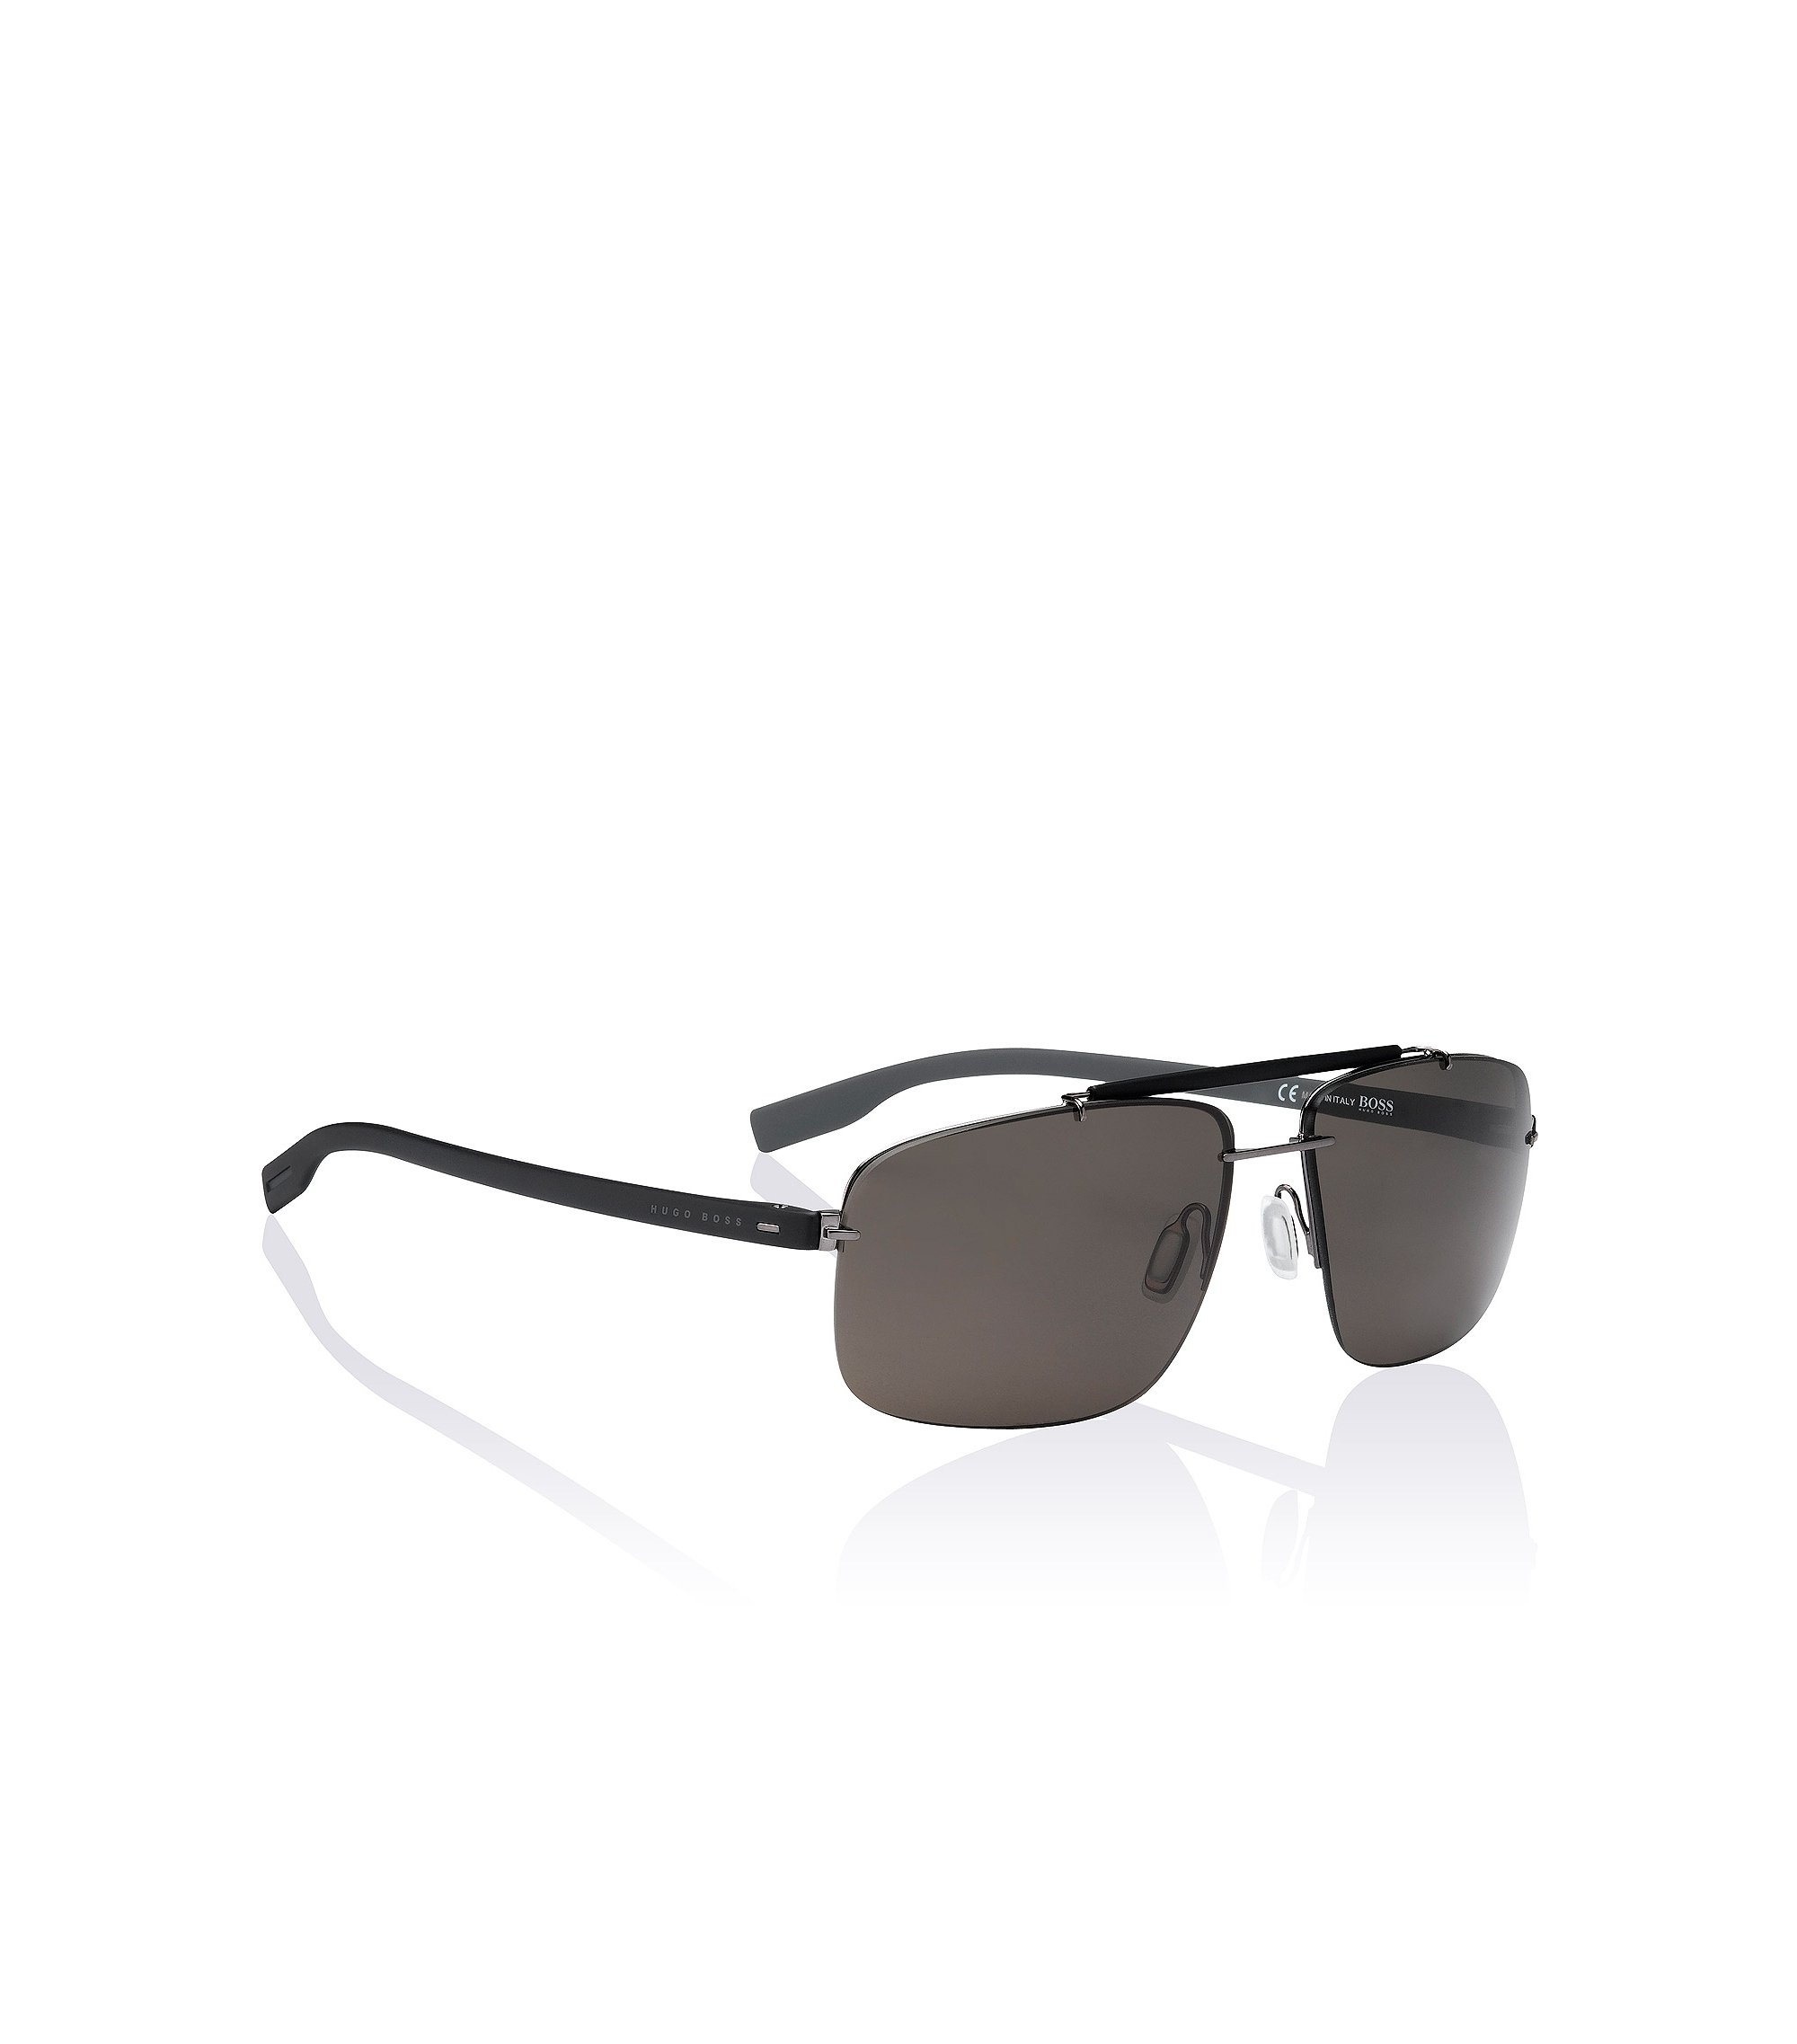 Sonnenbrille ´BOSS 0608` aus Metall, Assorted-Pre-Pack